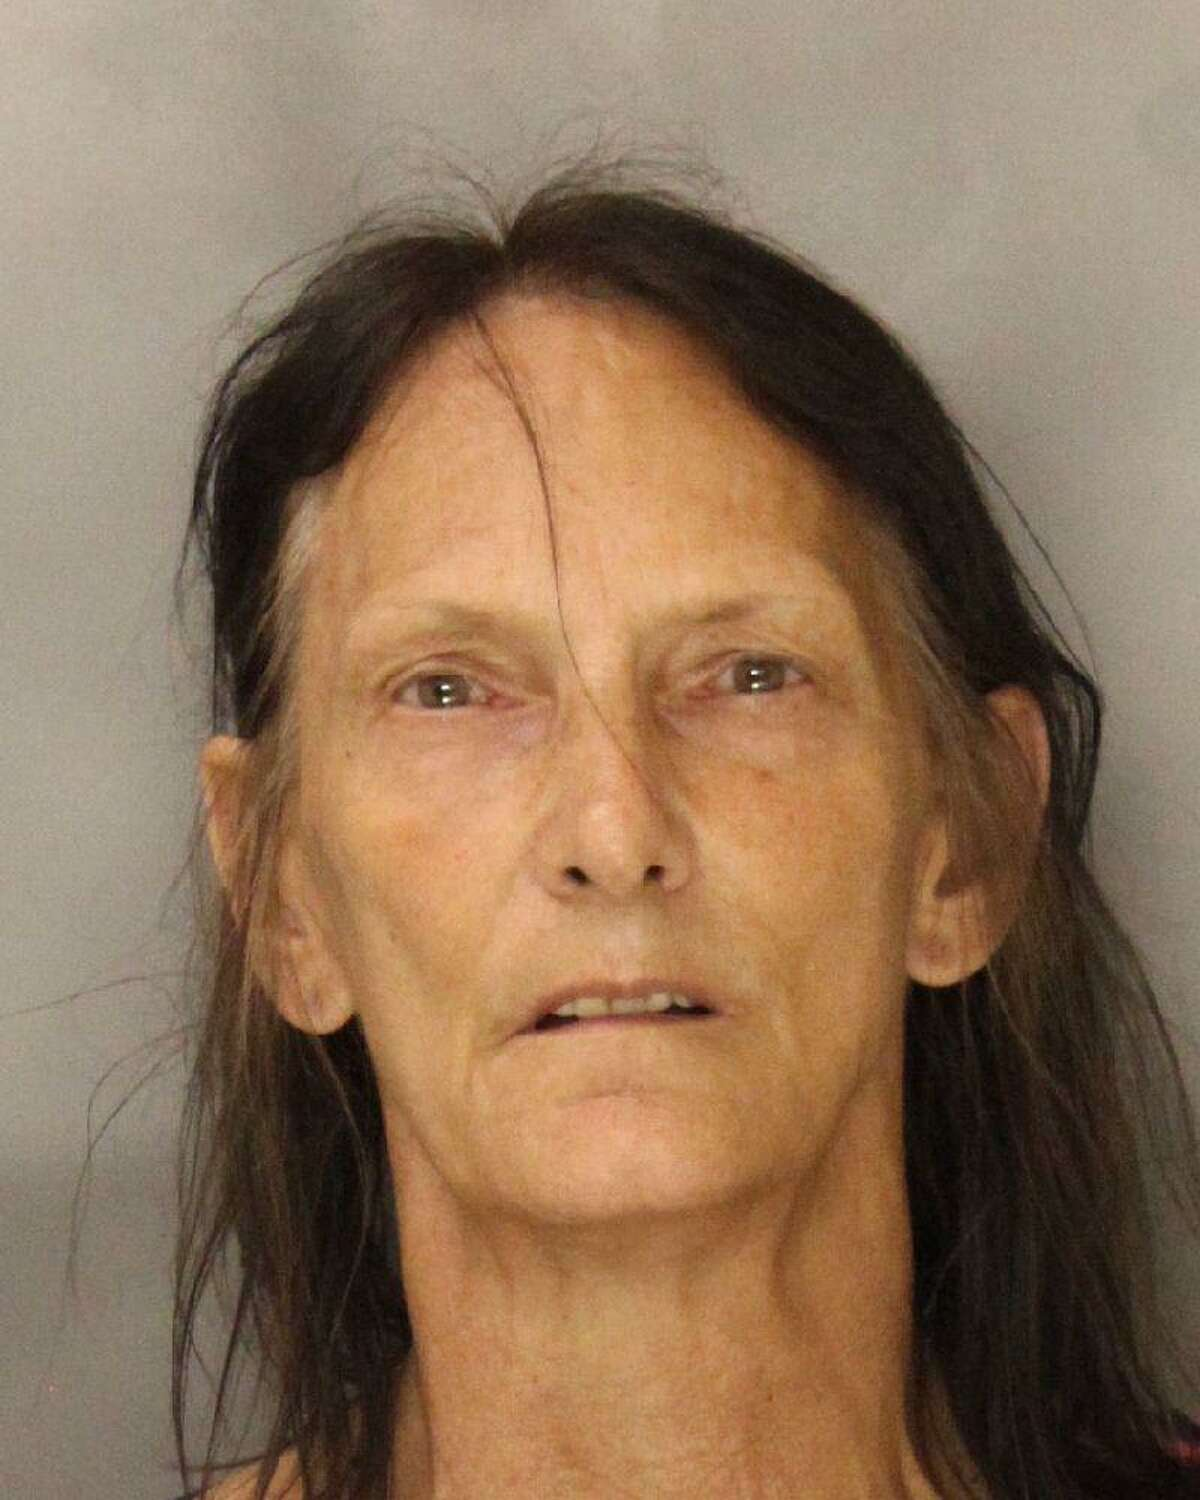 Debra McNeil, 52, was arrested on suspicion of attempted robbery, burglary and criminal conspiracy.